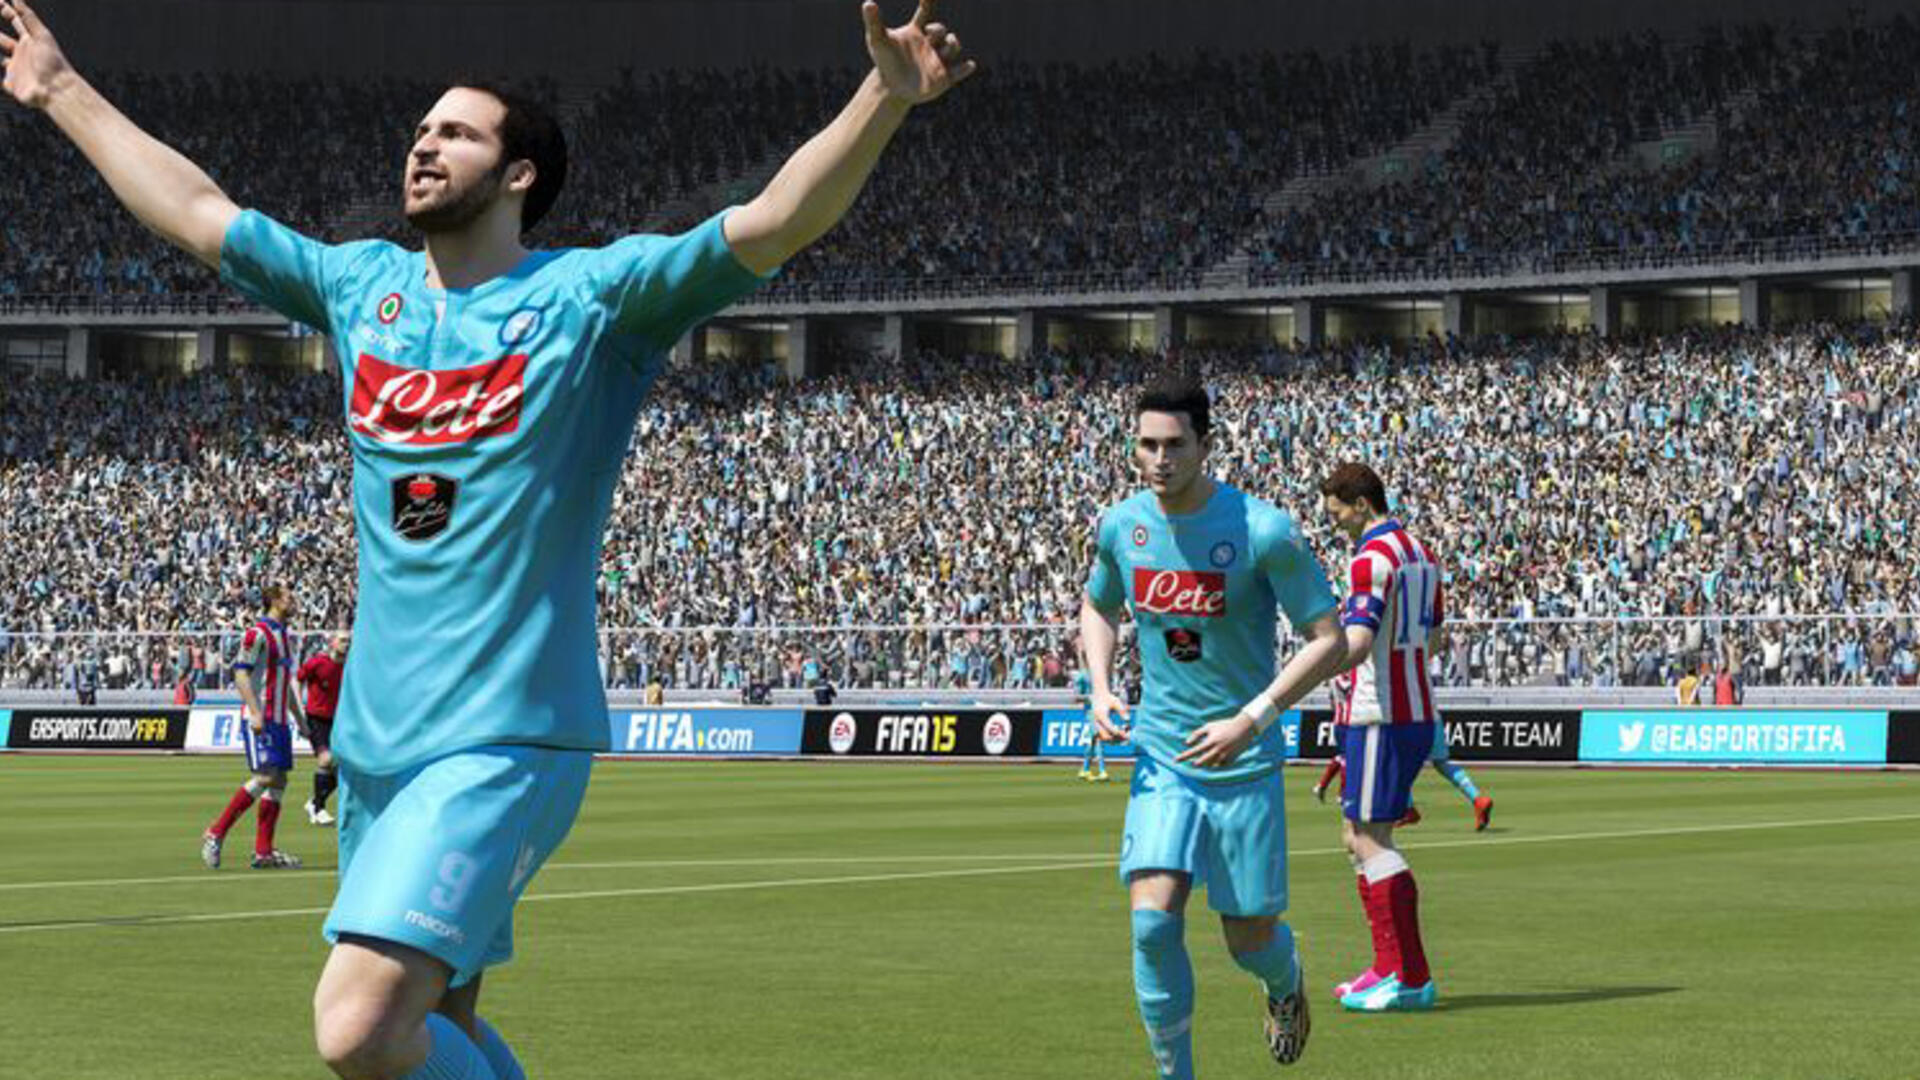 FIFA 15 PS4 Review: The Return of the King